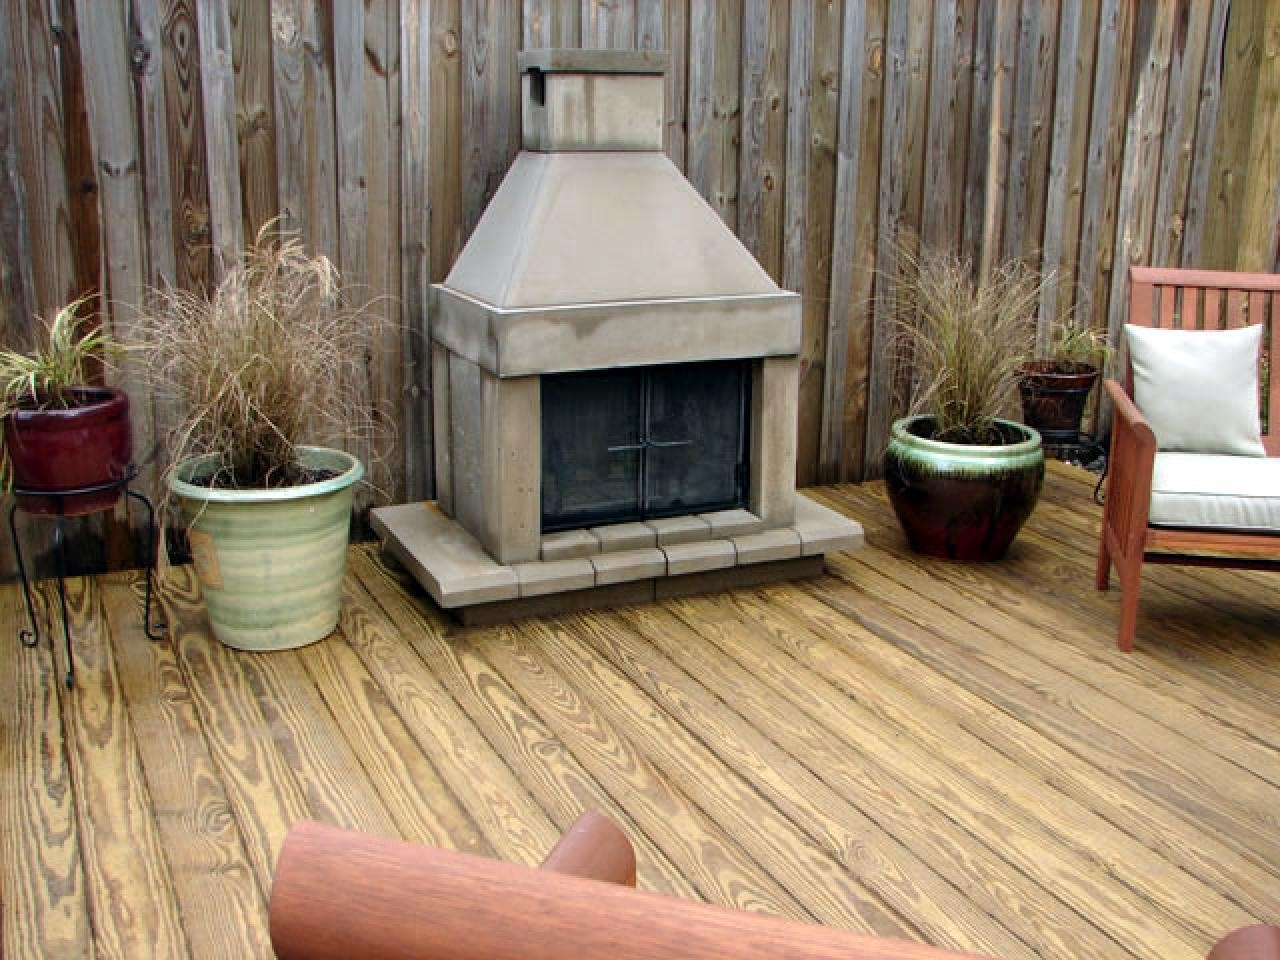 Image of: 66 Fire Pit And Outdoor Fireplace Ideas Diy Network Blog Made For Inexpensive Outdoor Fireplace Popular Today Inexpensive Outdoor Fireplace